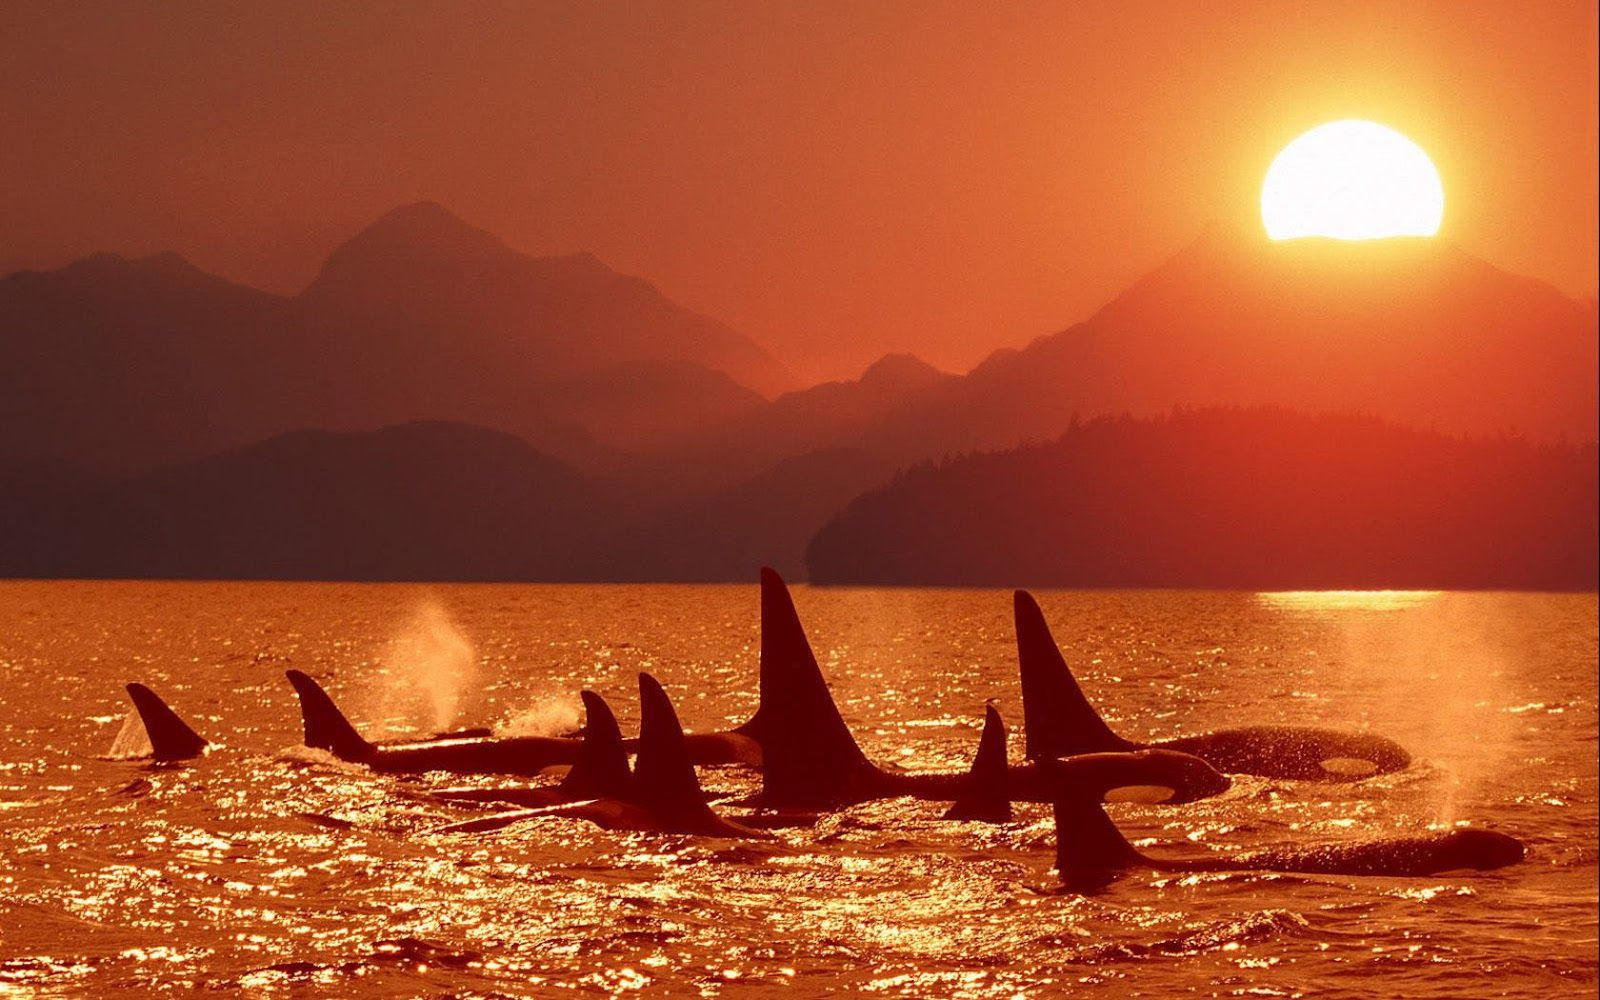 Orca wallpaper hd google suche sunset and sunrise pinterest orca wallpaper hd google suche altavistaventures Images